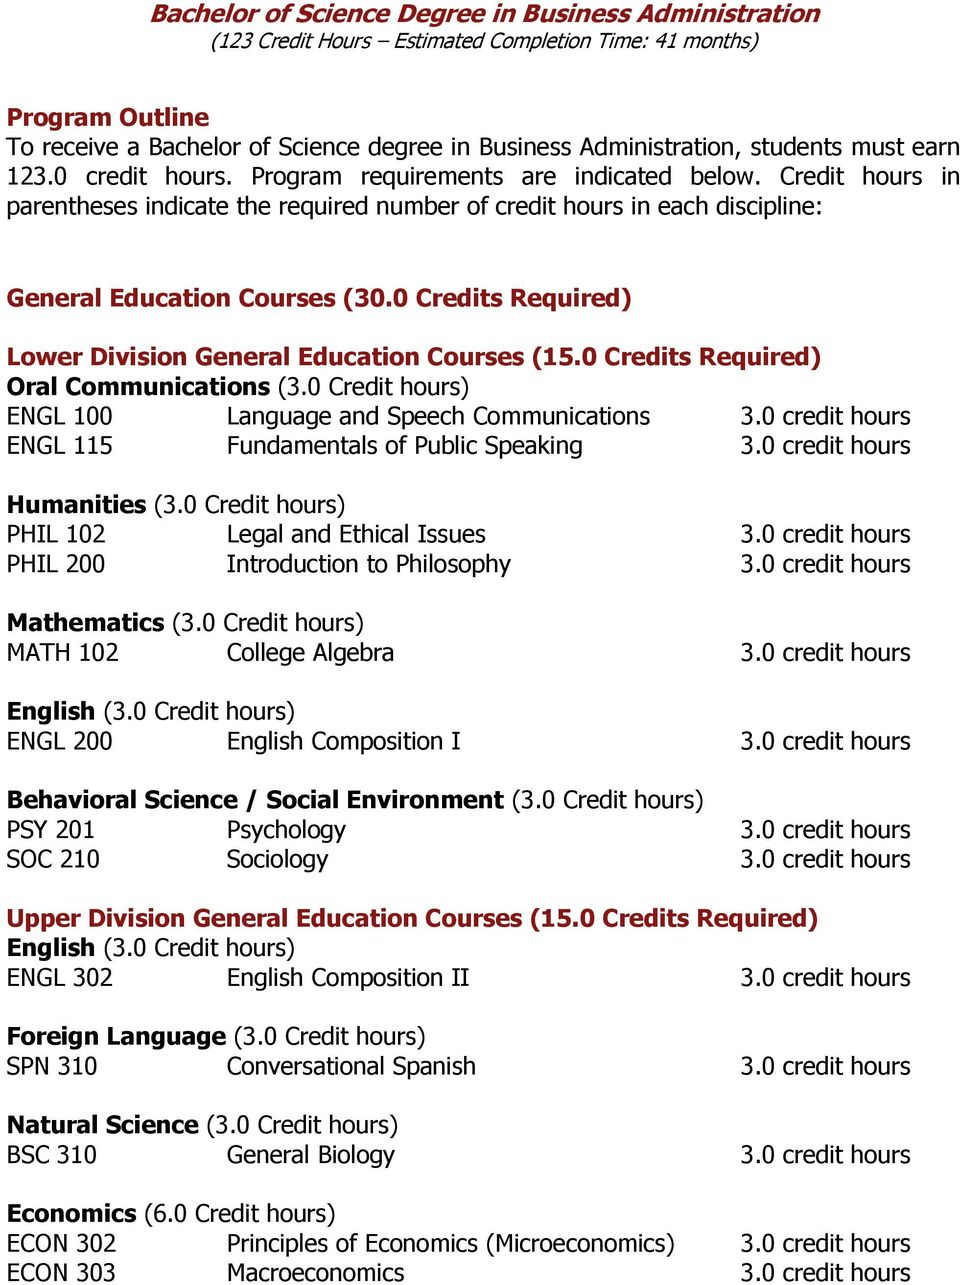 0 Credits Required) Oral Communications (3.0 Credit hours) ENGL 100 Language and Speech Communications 3.0 credit hours ENGL 115 Fundamentals of Public Speaking 3.0 credit hours Humanities (3.